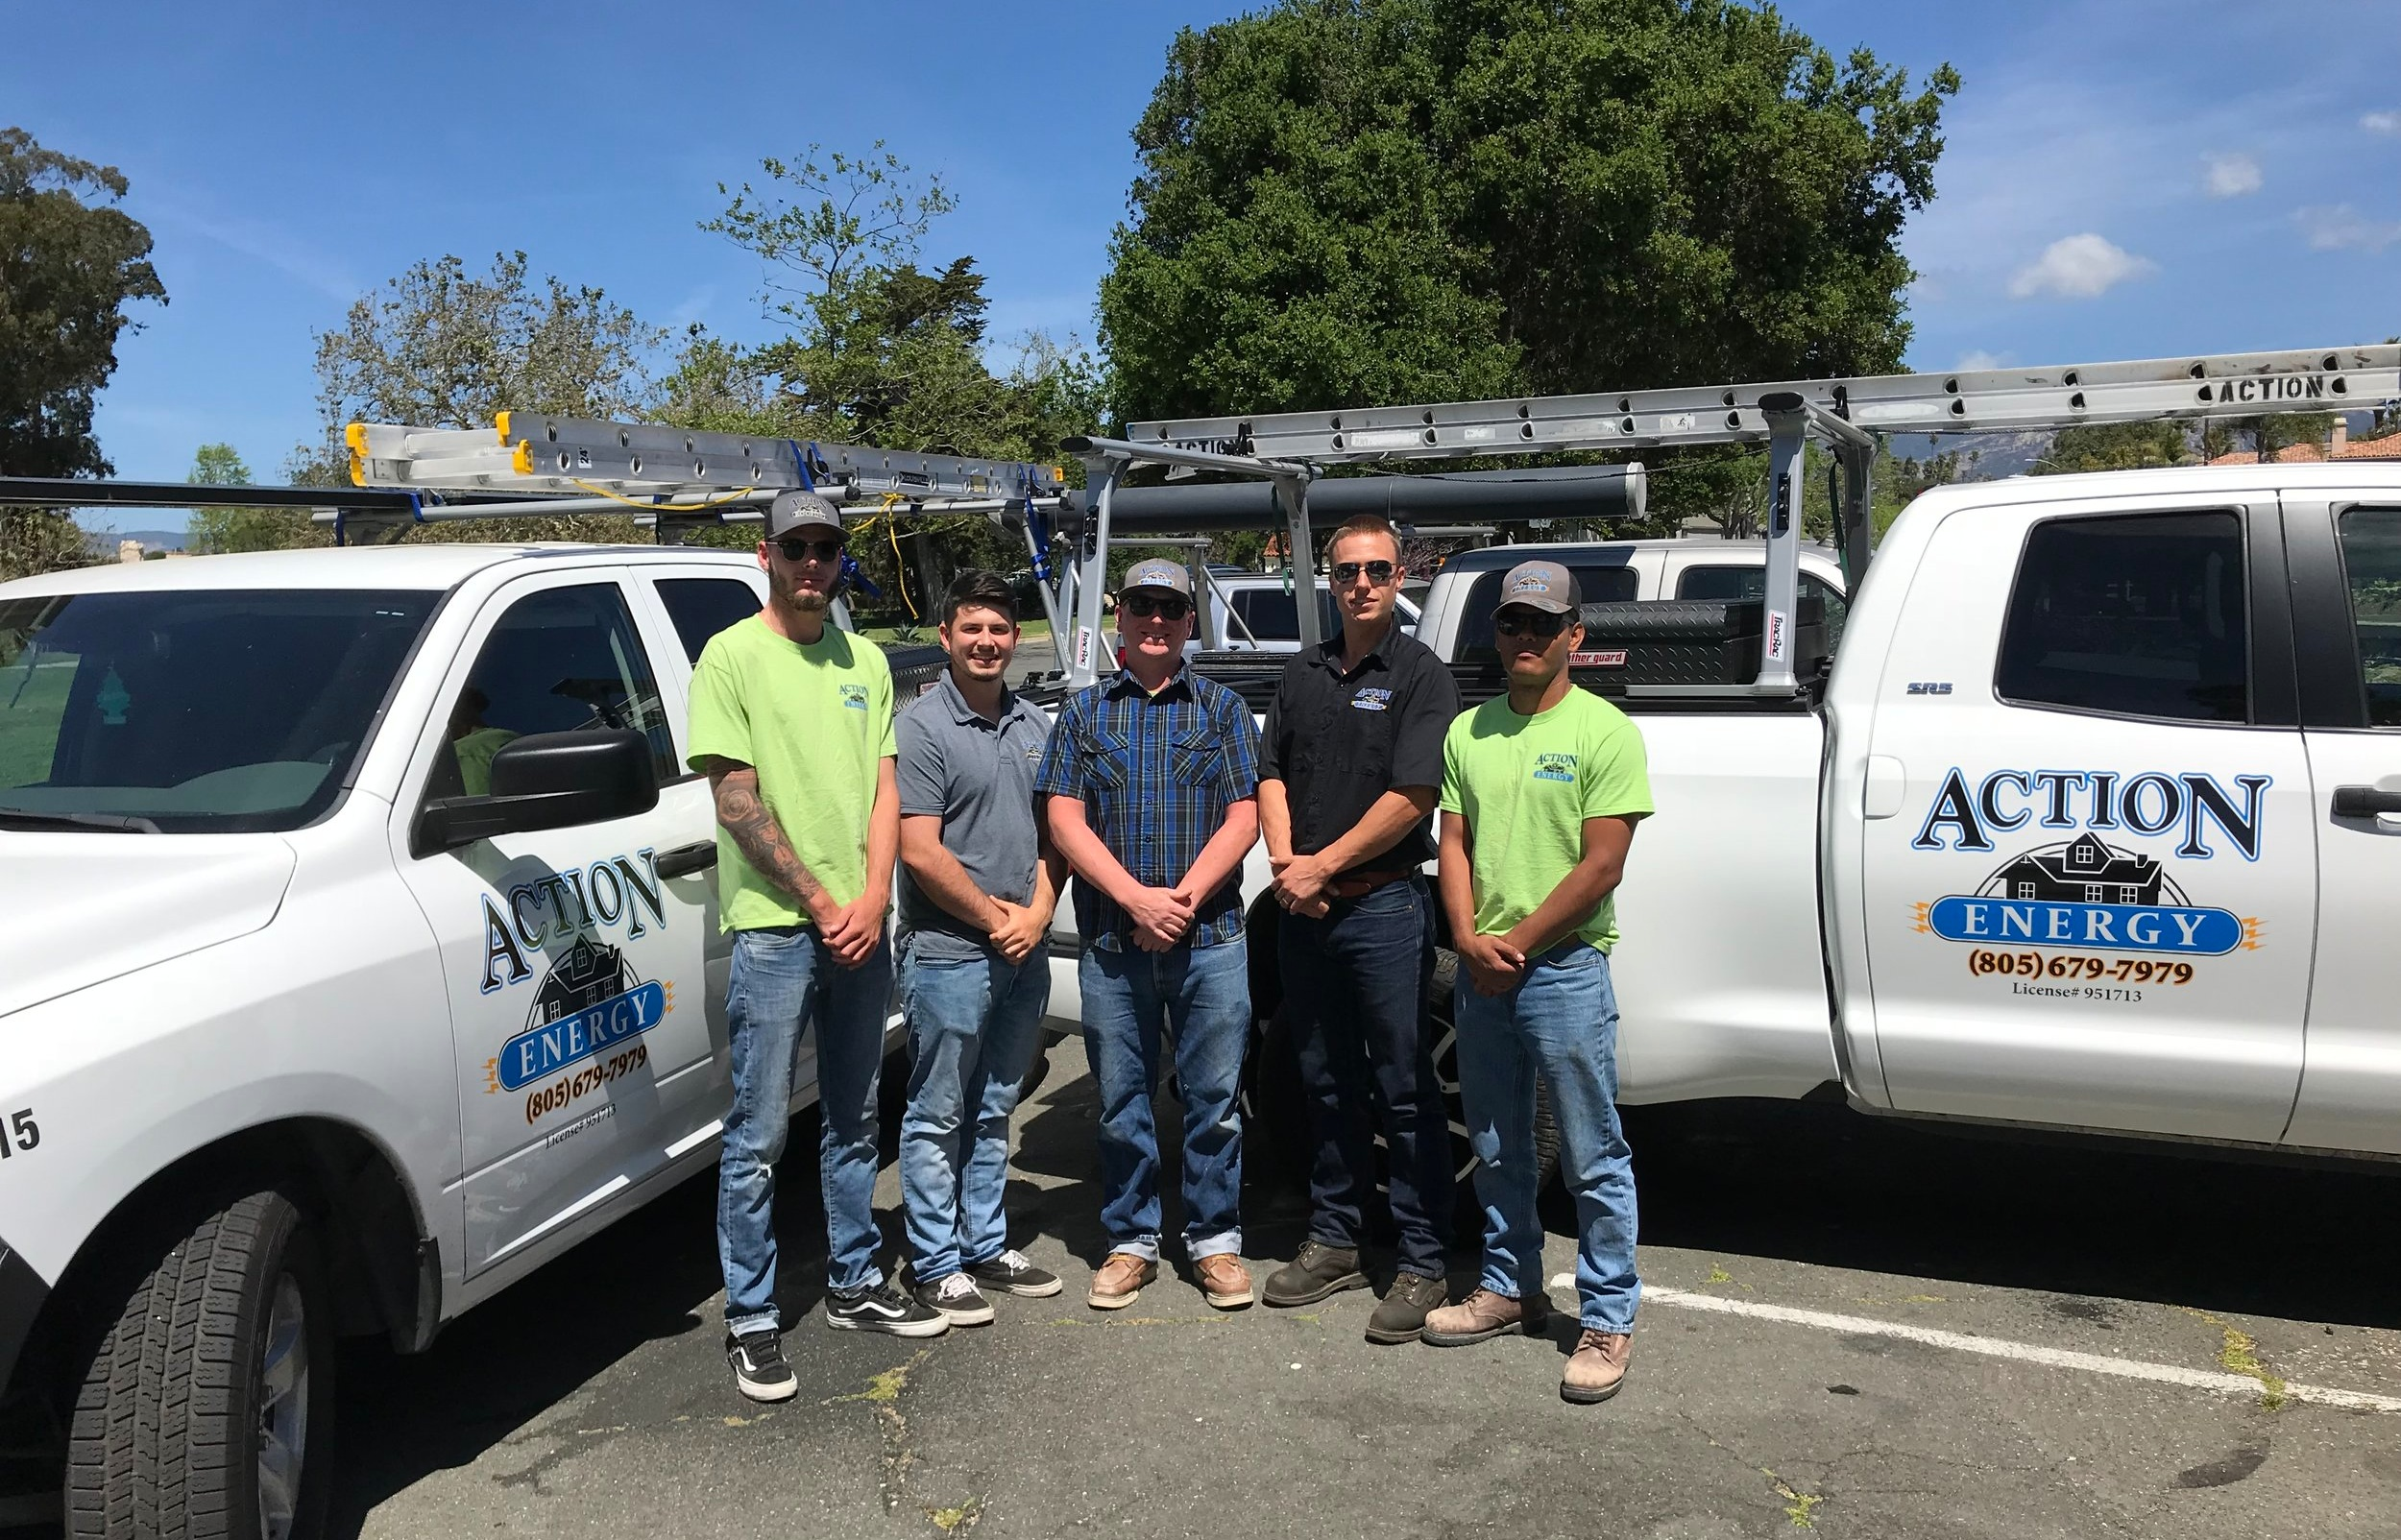 Your Action Energy Team